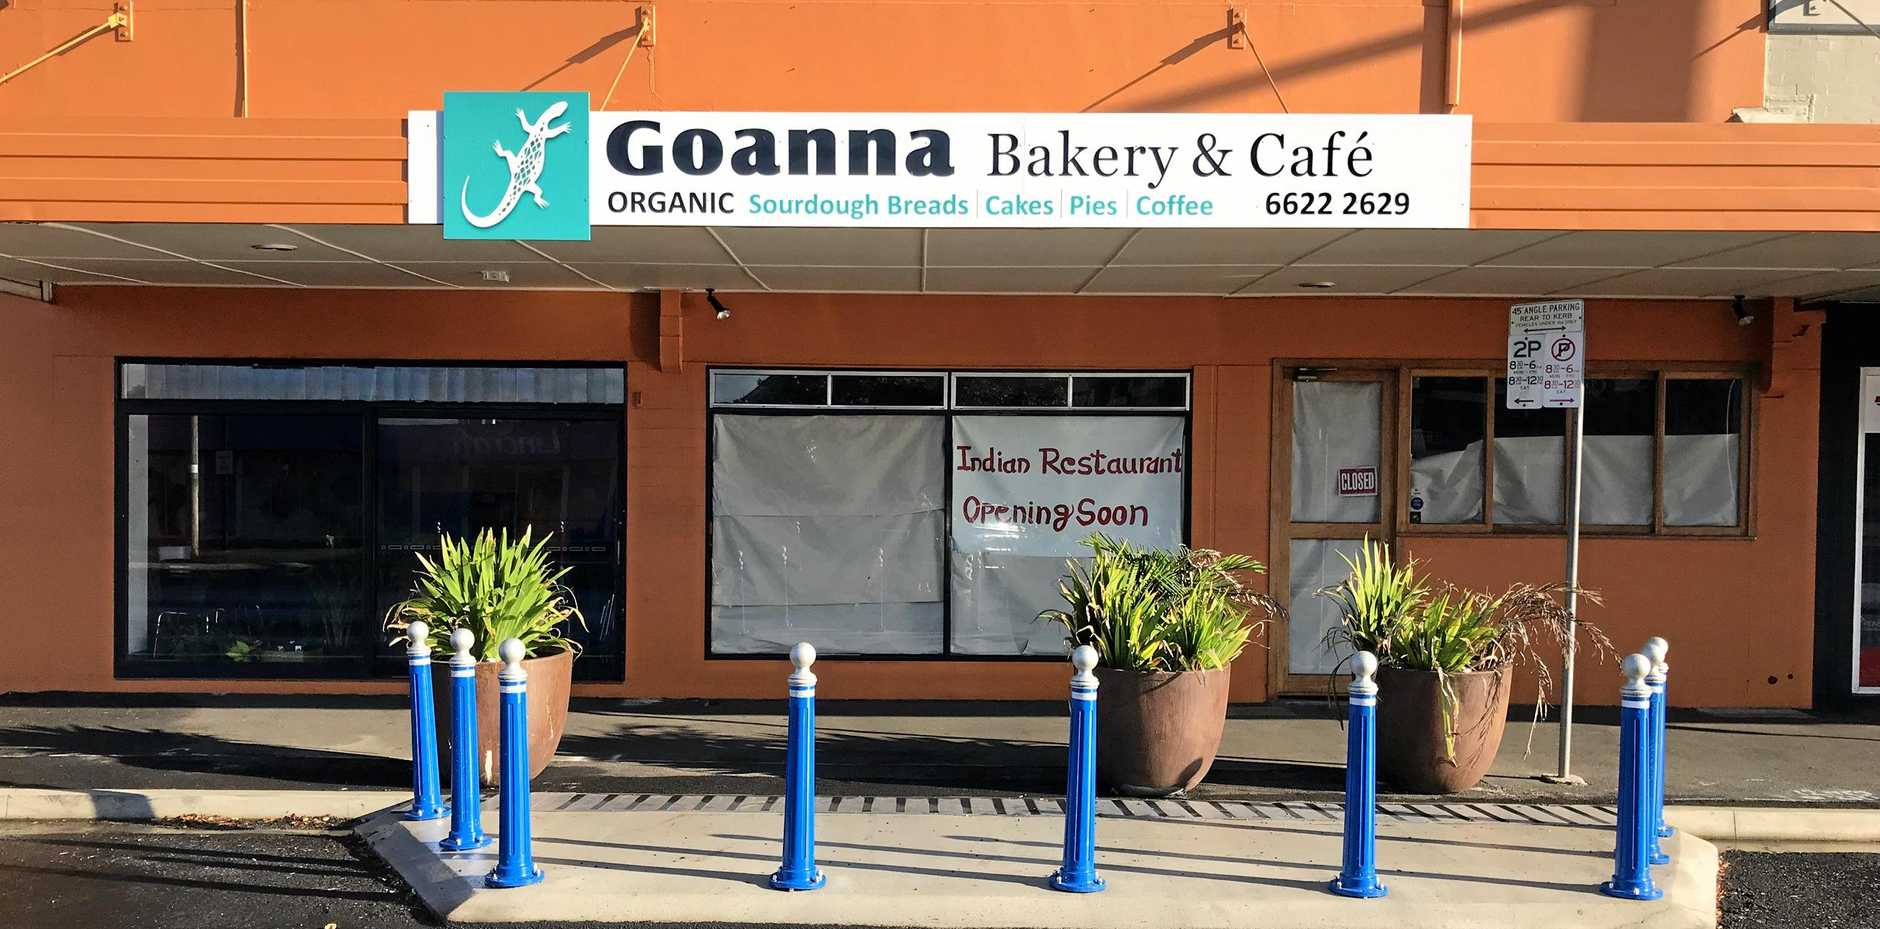 NEW BUSINESS: A new restaurant is set to open on the site of a popular bakery which suddenly closed in May.